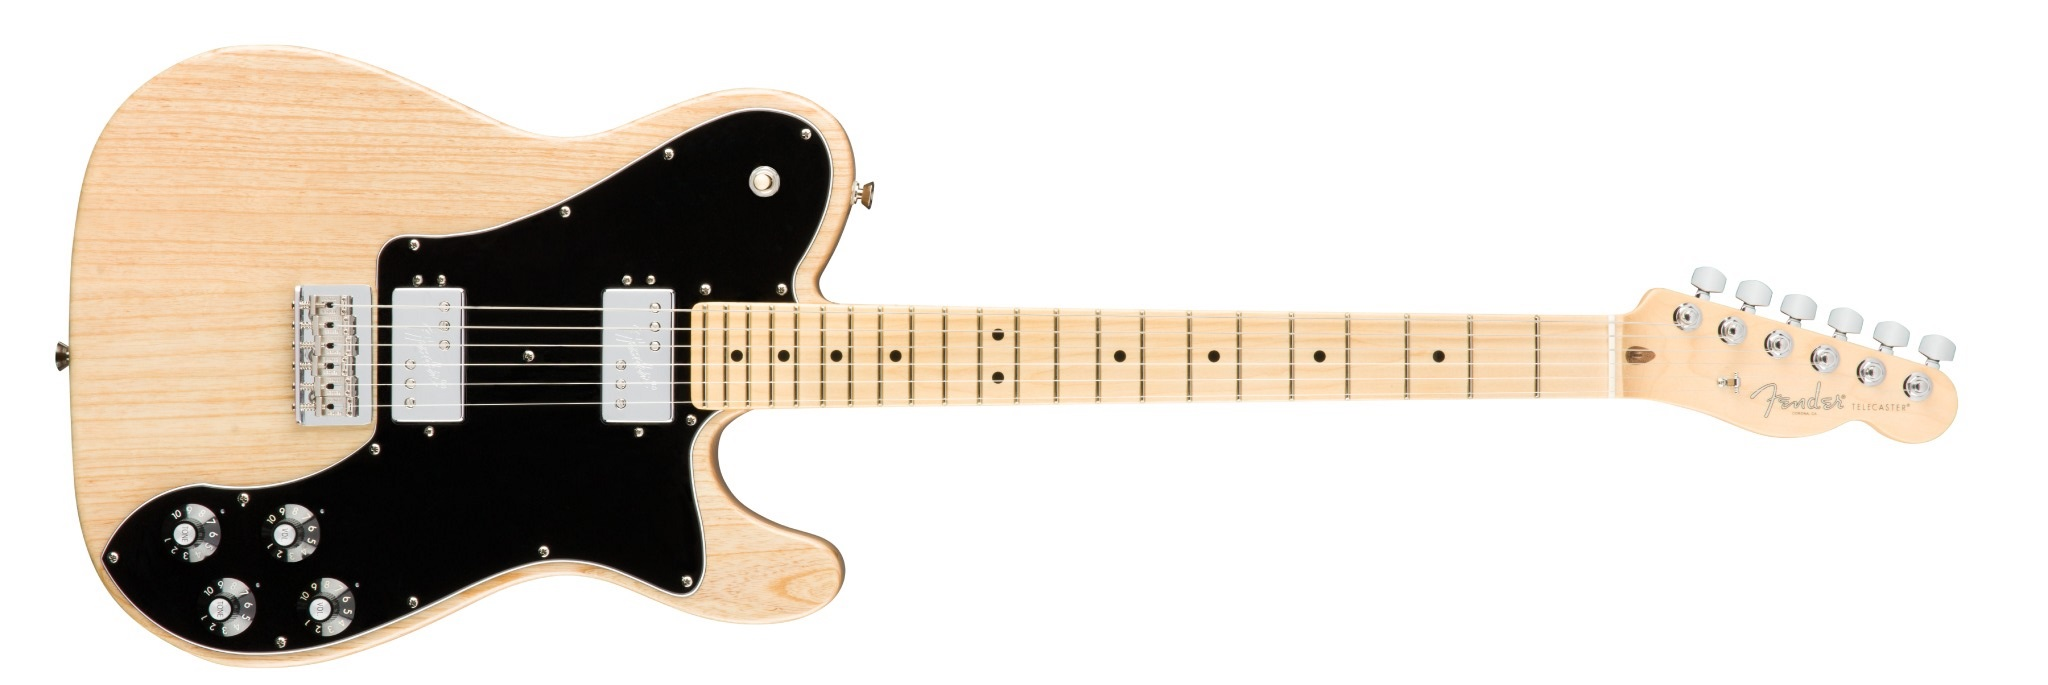 Fender American Pro Telecaster DLX Shawbuckers MN NAT ASH